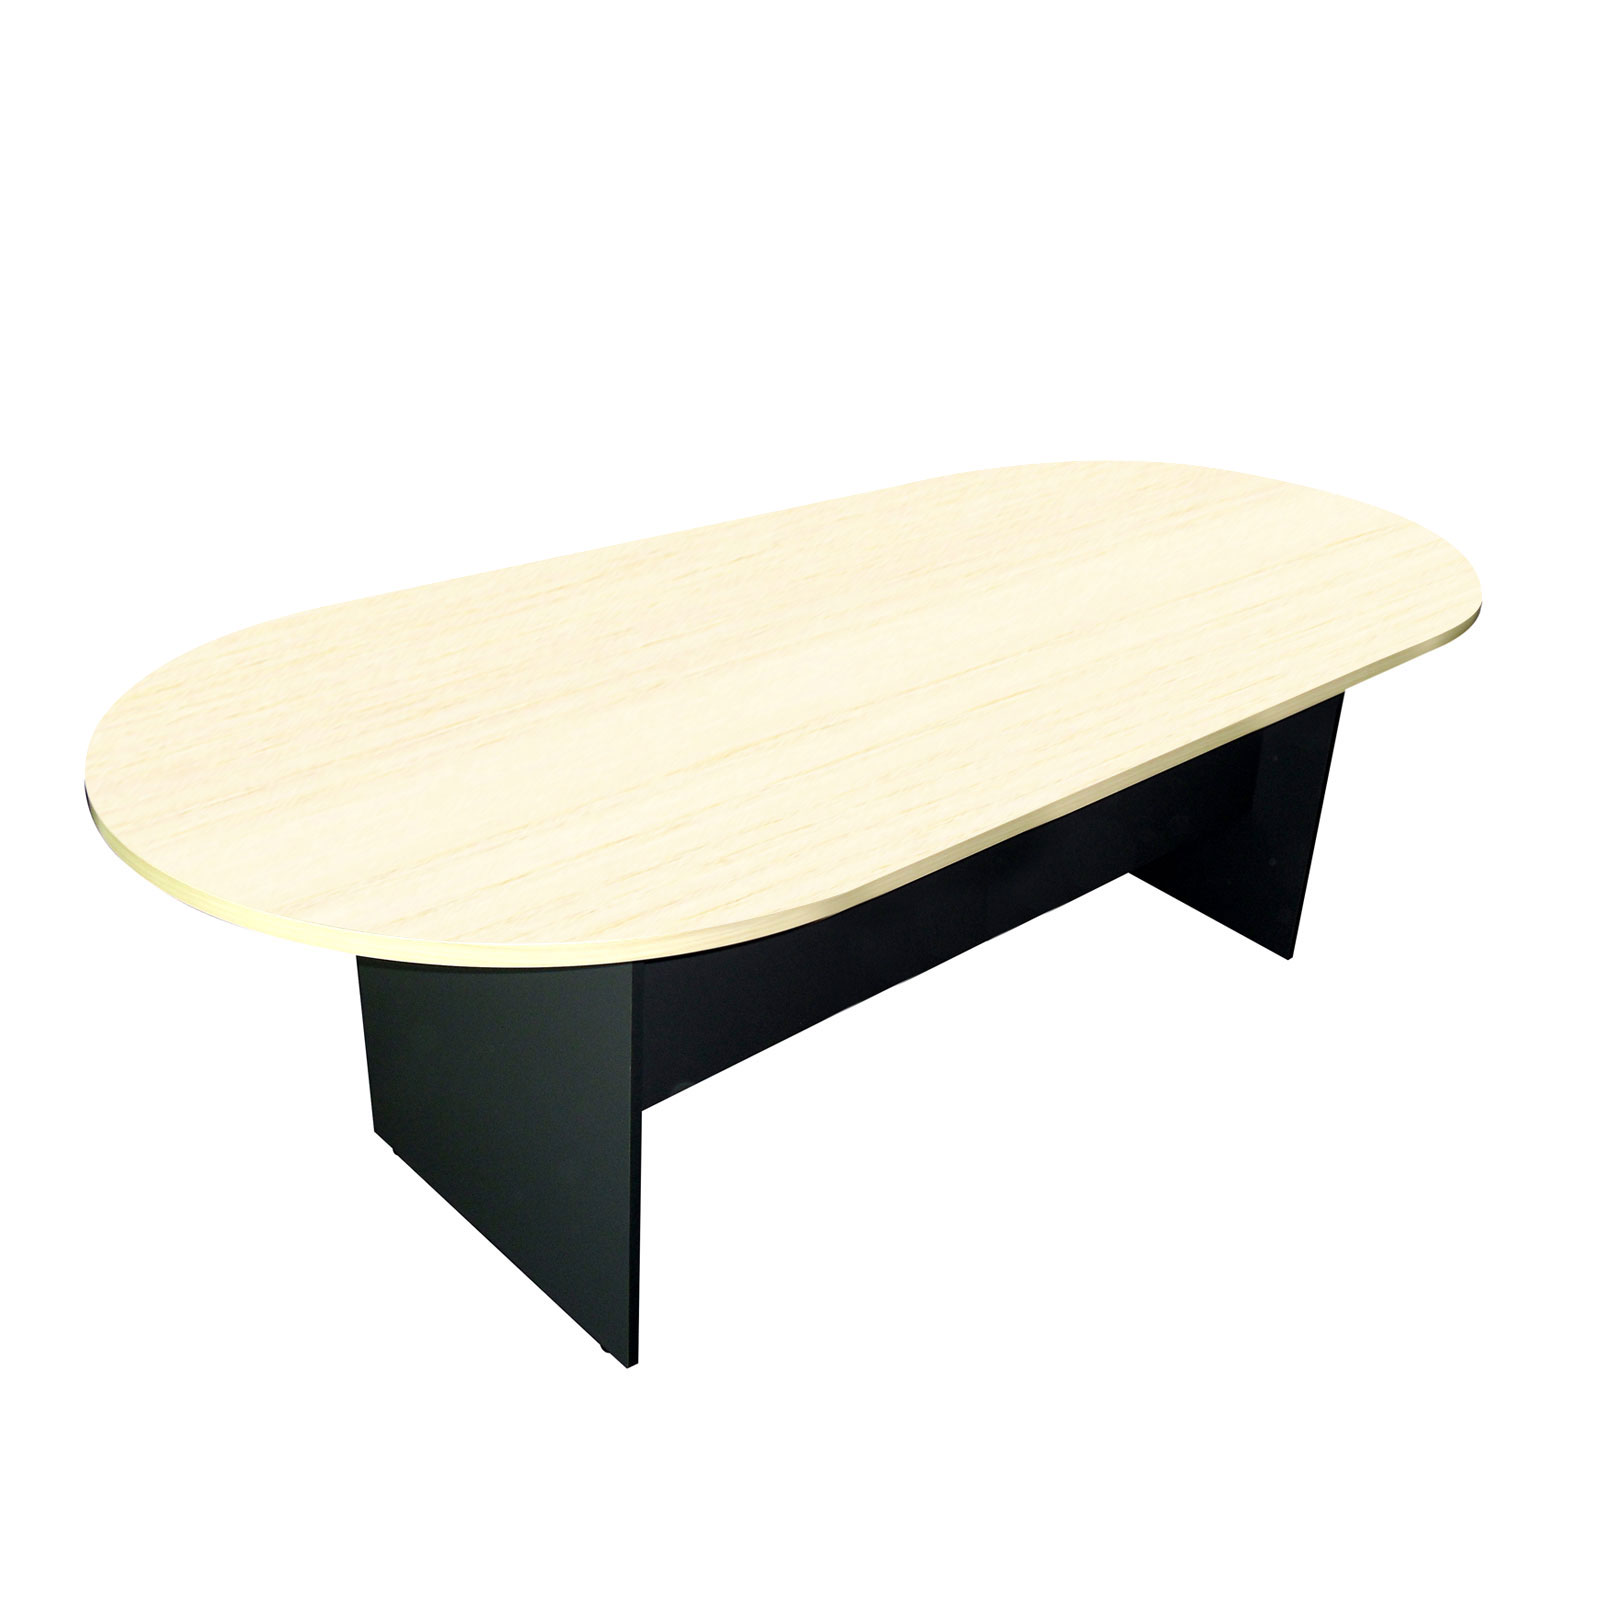 Meeting Table Wooden Oval Shape